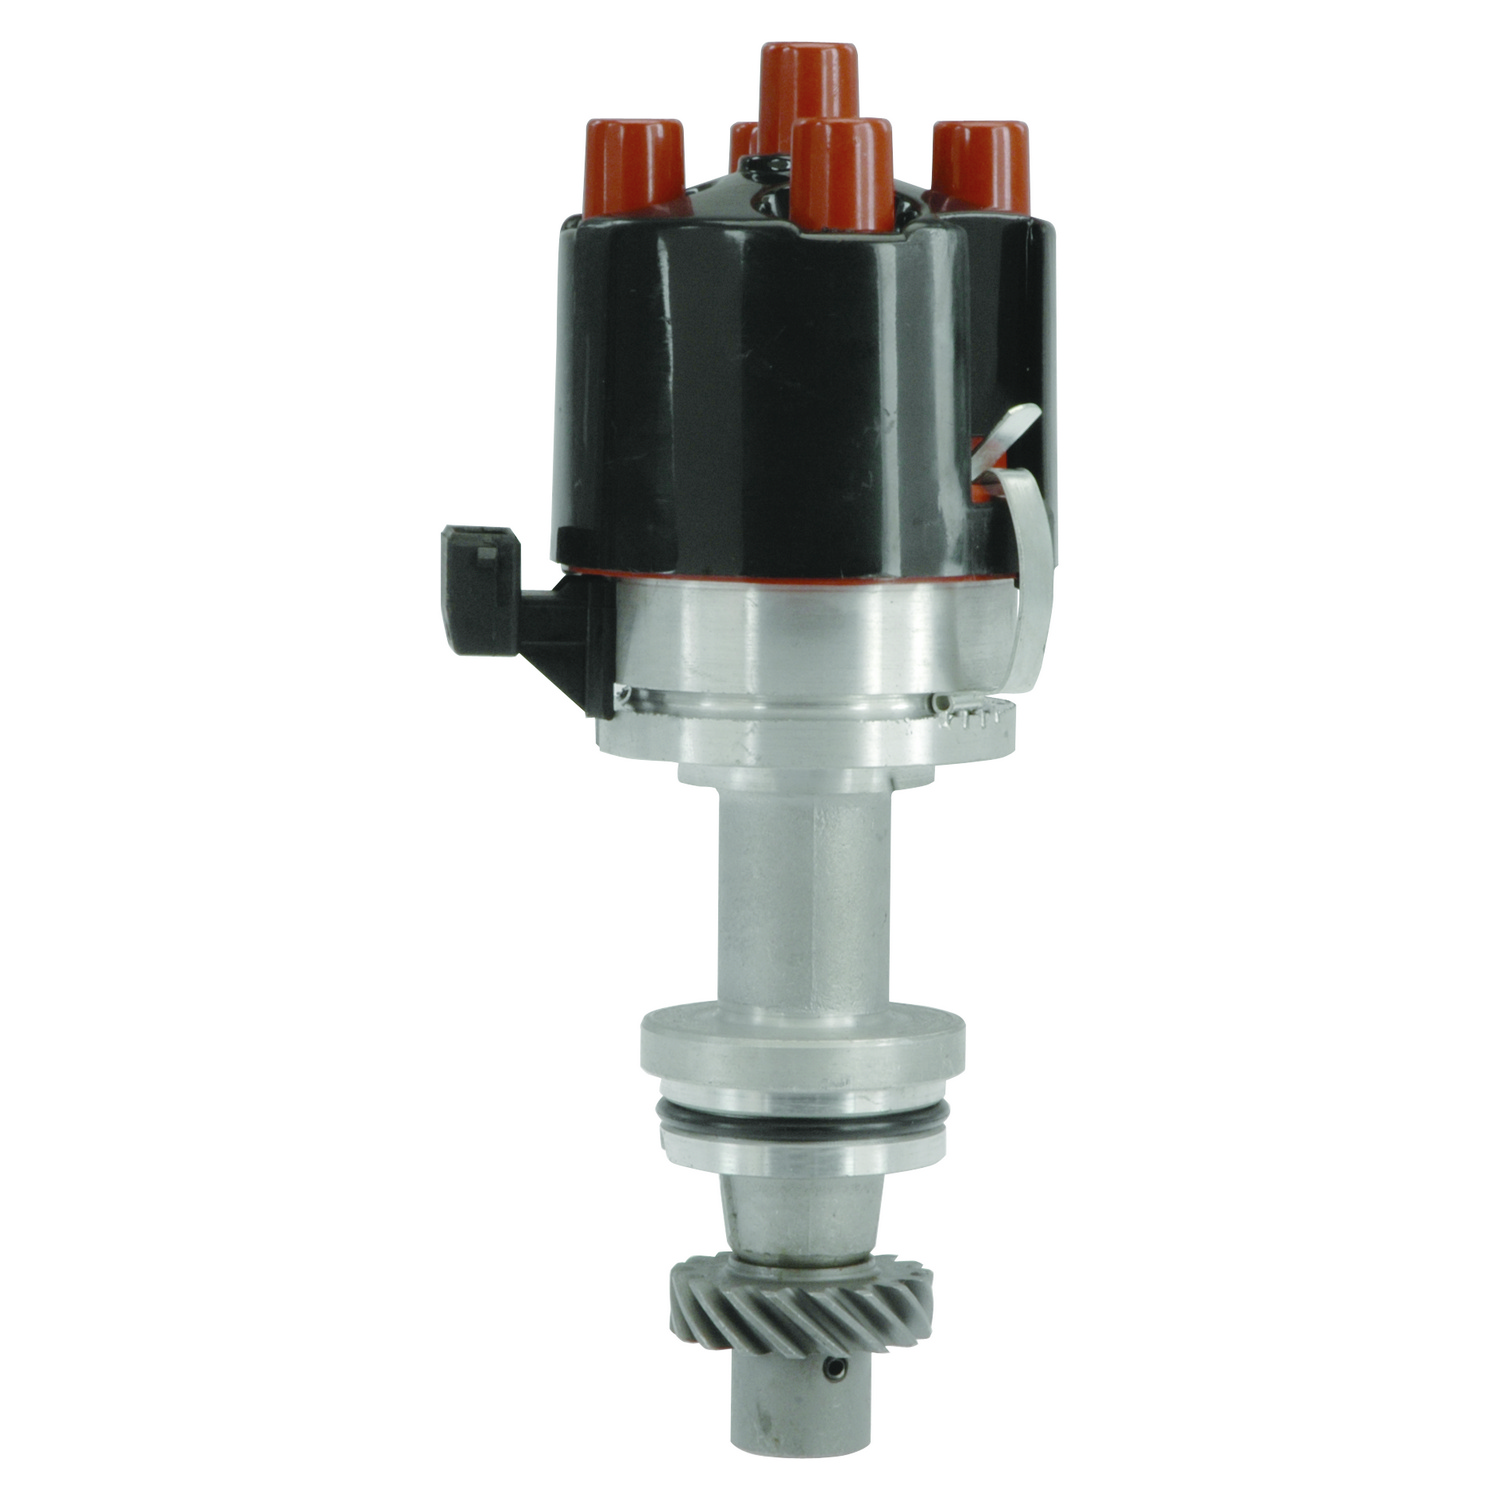 Car & Truck Parts Auto Parts and Vehicles New Distributor For Ford Lincoln Mercury 1975-76 351 5.8 6.6 400 7.5 460 V8